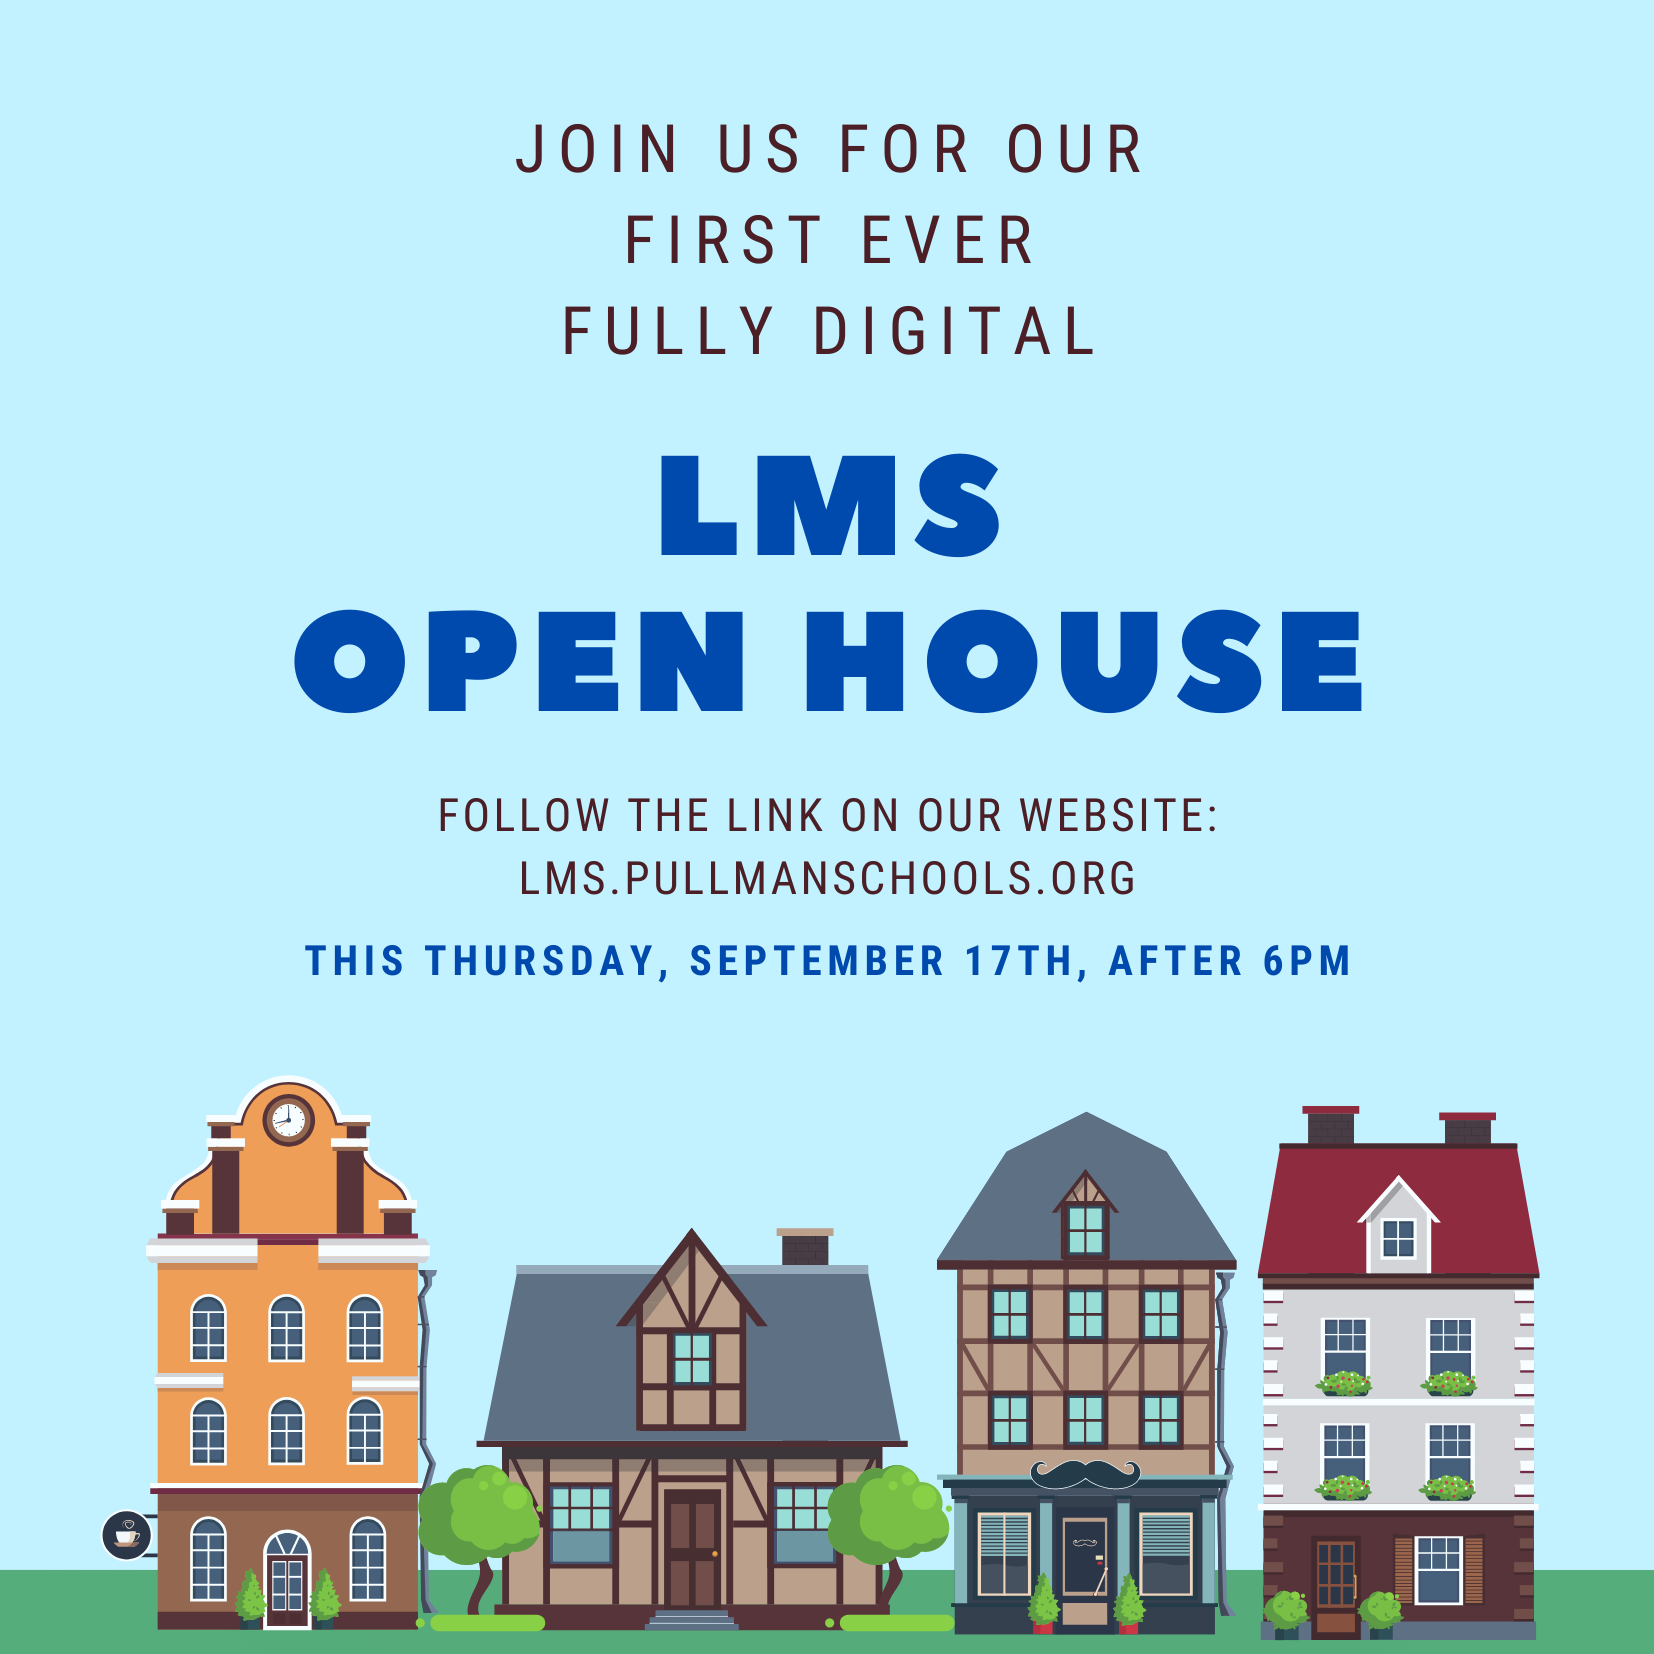 LMS Open House Graphic - click to follow link to open house videos